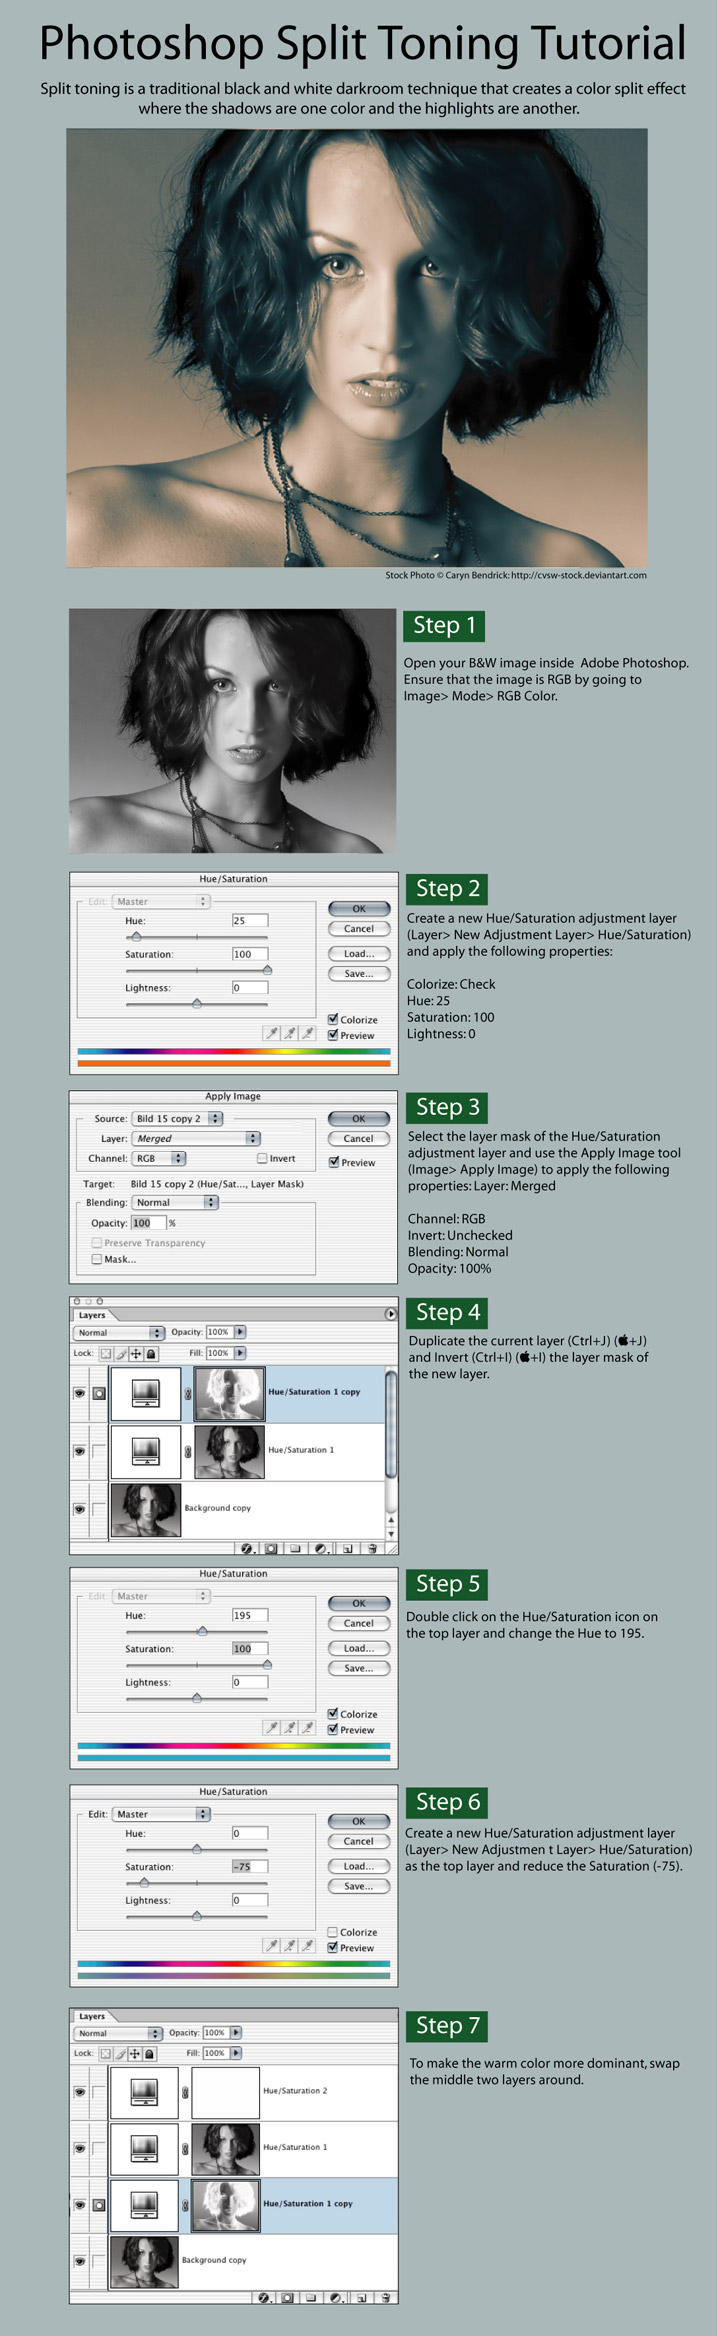 Photoshop SplitToning Tutorial by carlzon